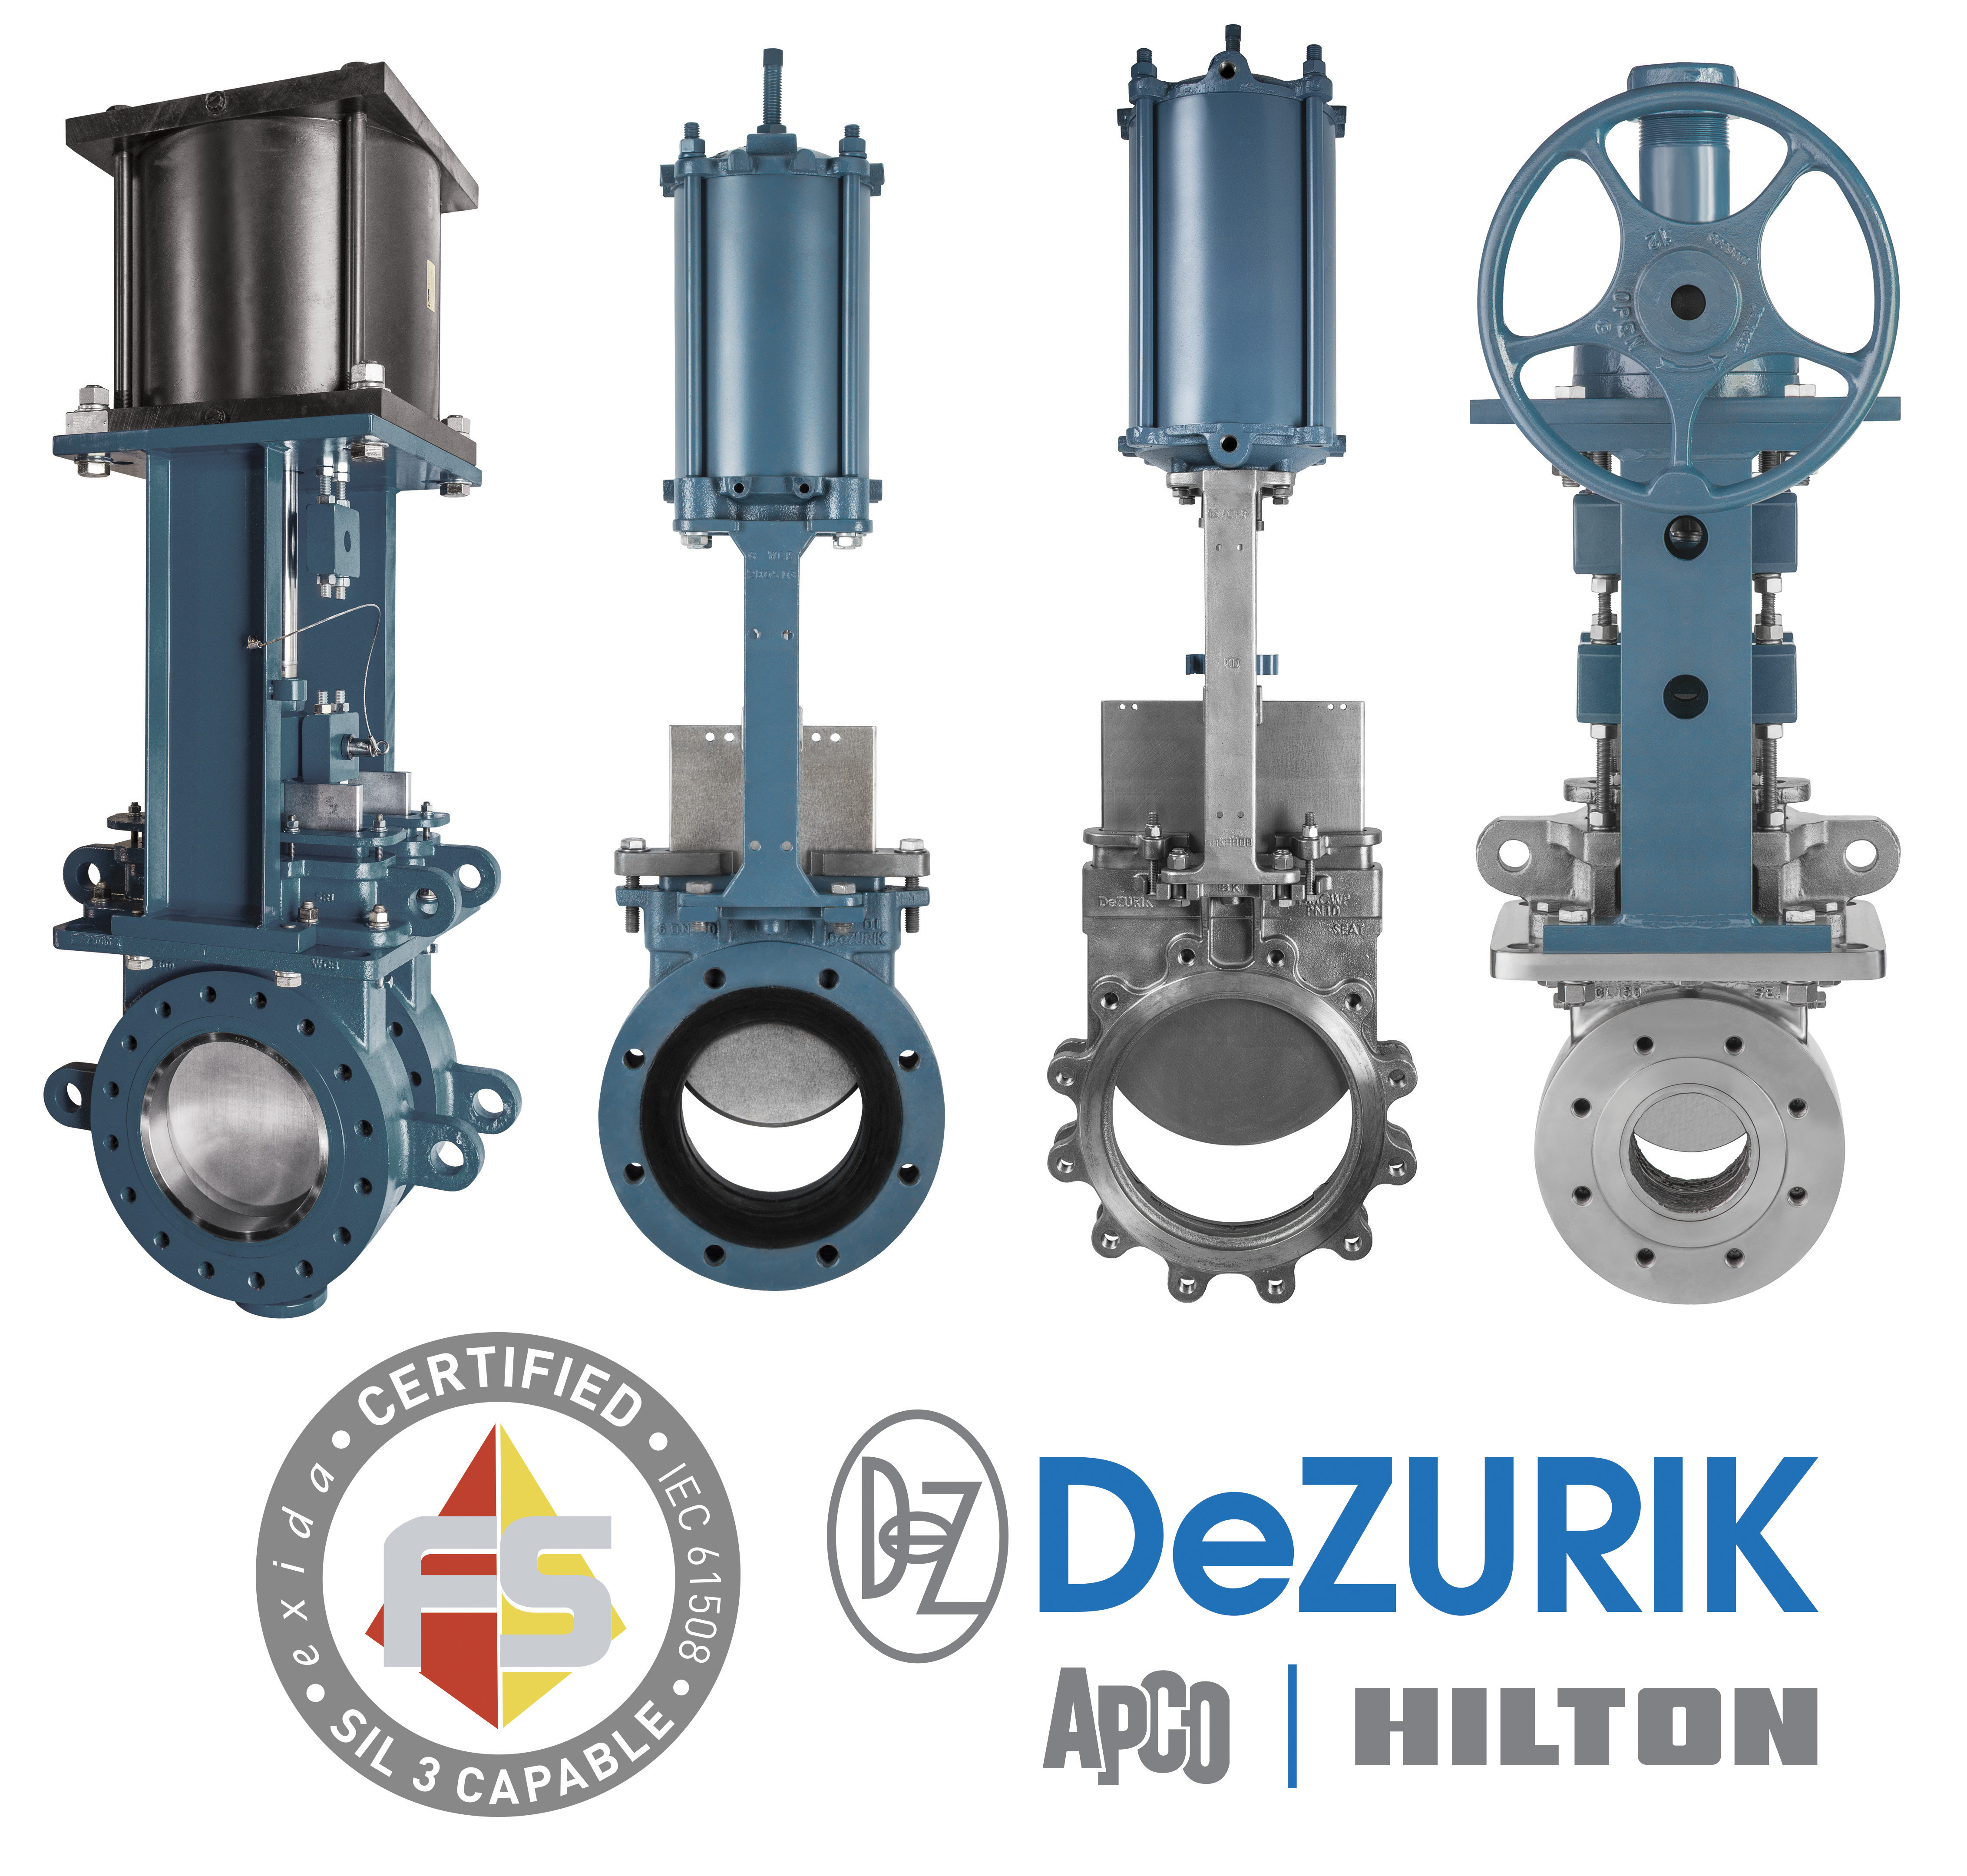 dezurik knife gate valves earn safety integrity level  sil